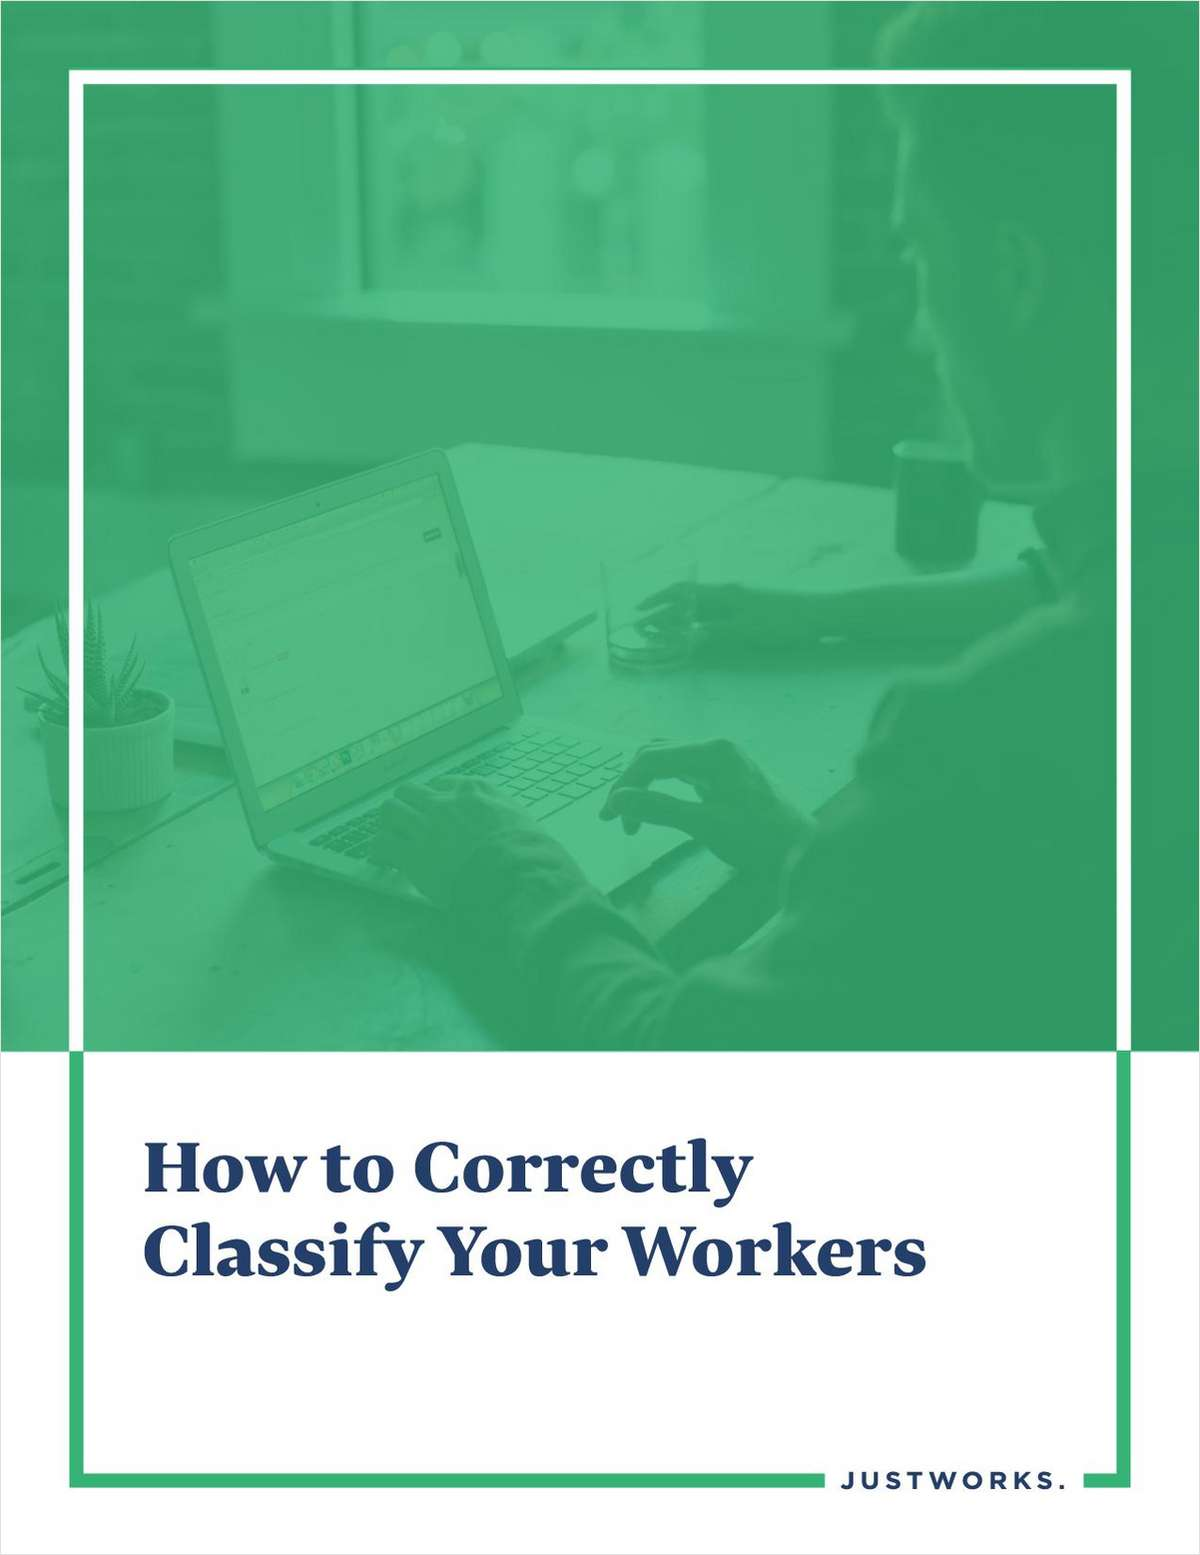 How to Correctly Classify Your Workers